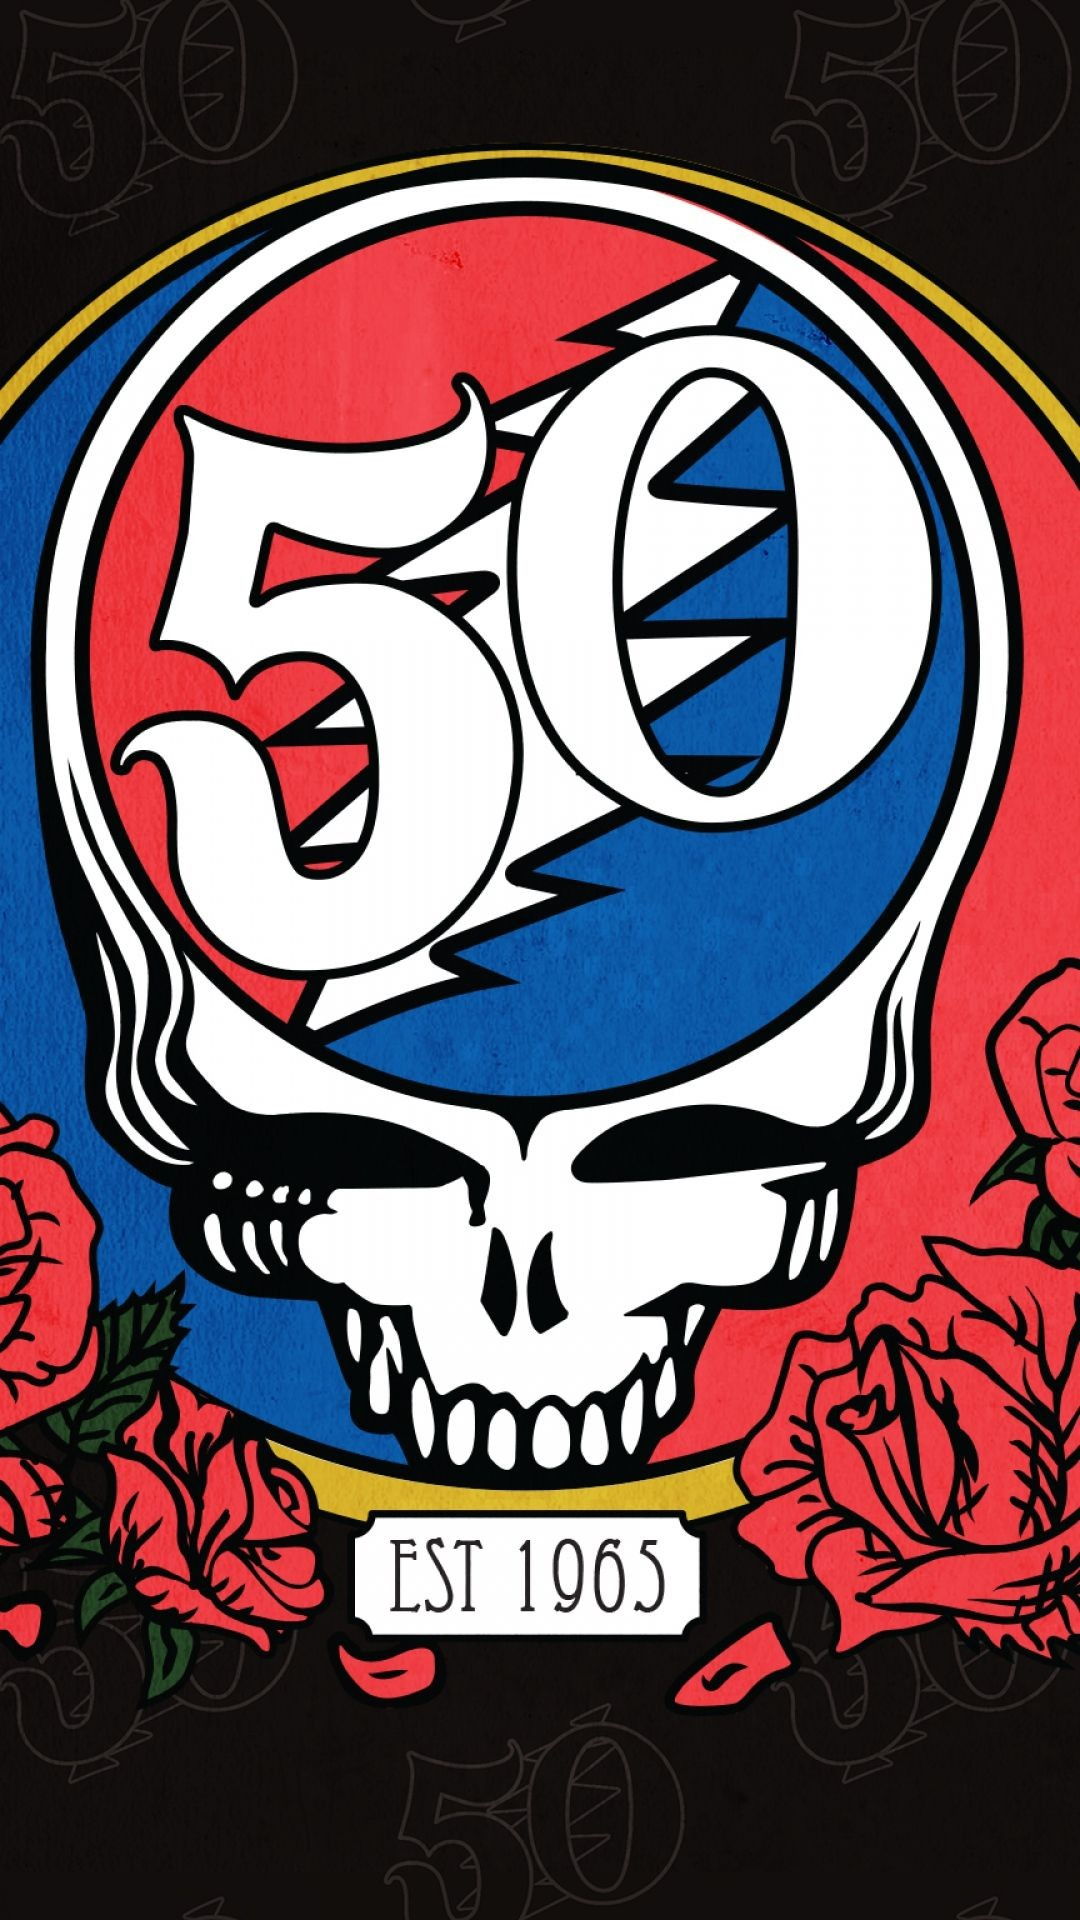 1080x1920 Download Wallpaper  Grateful dead, Santa clara, Skull .